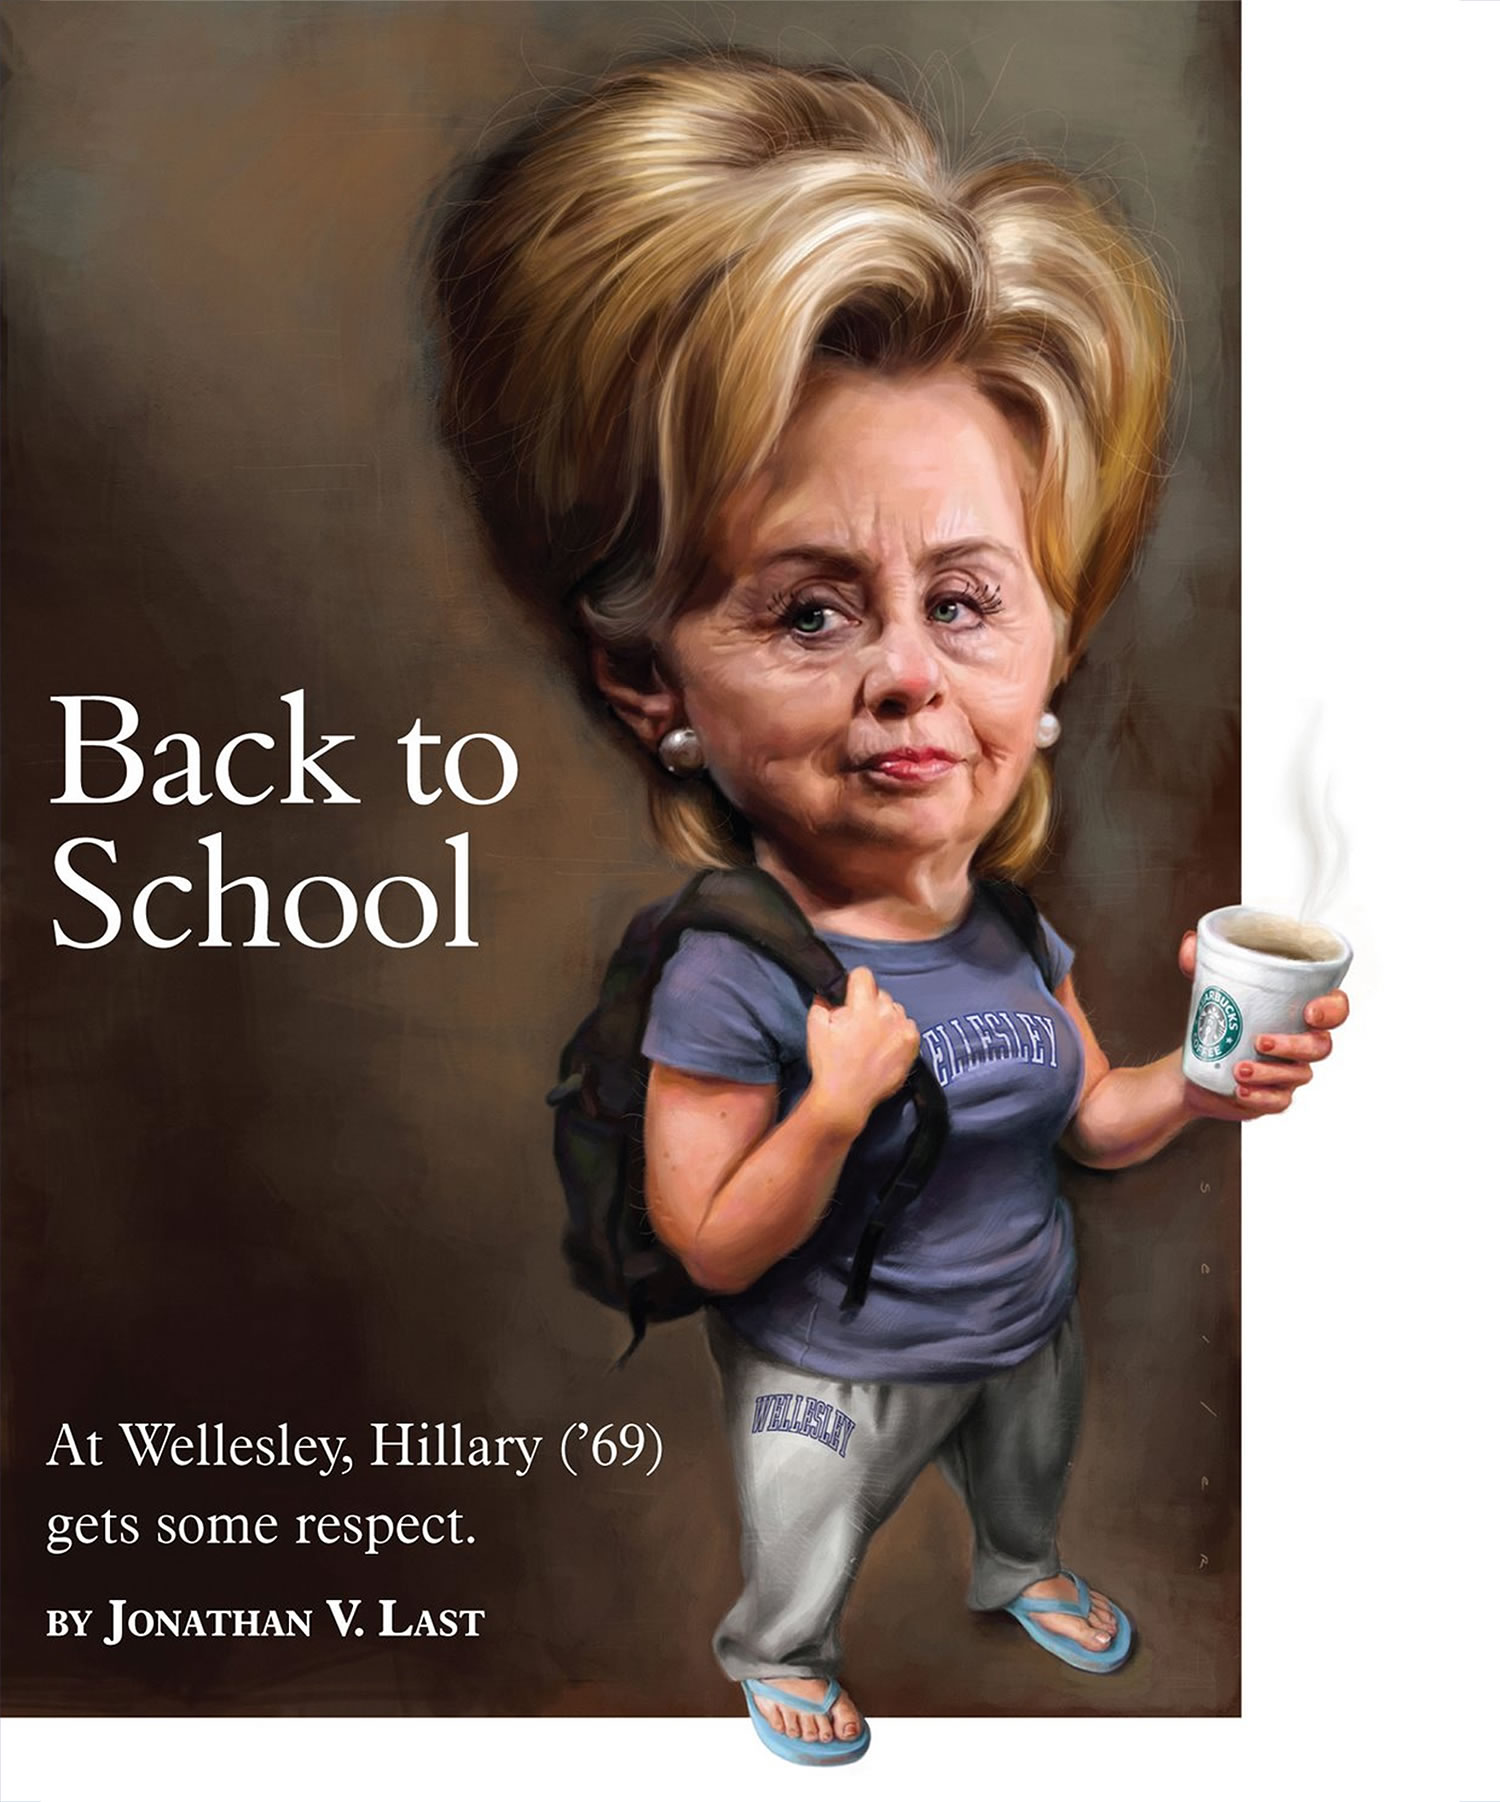 hillary clinton (wellesley college) back to school cover by Jason seiler